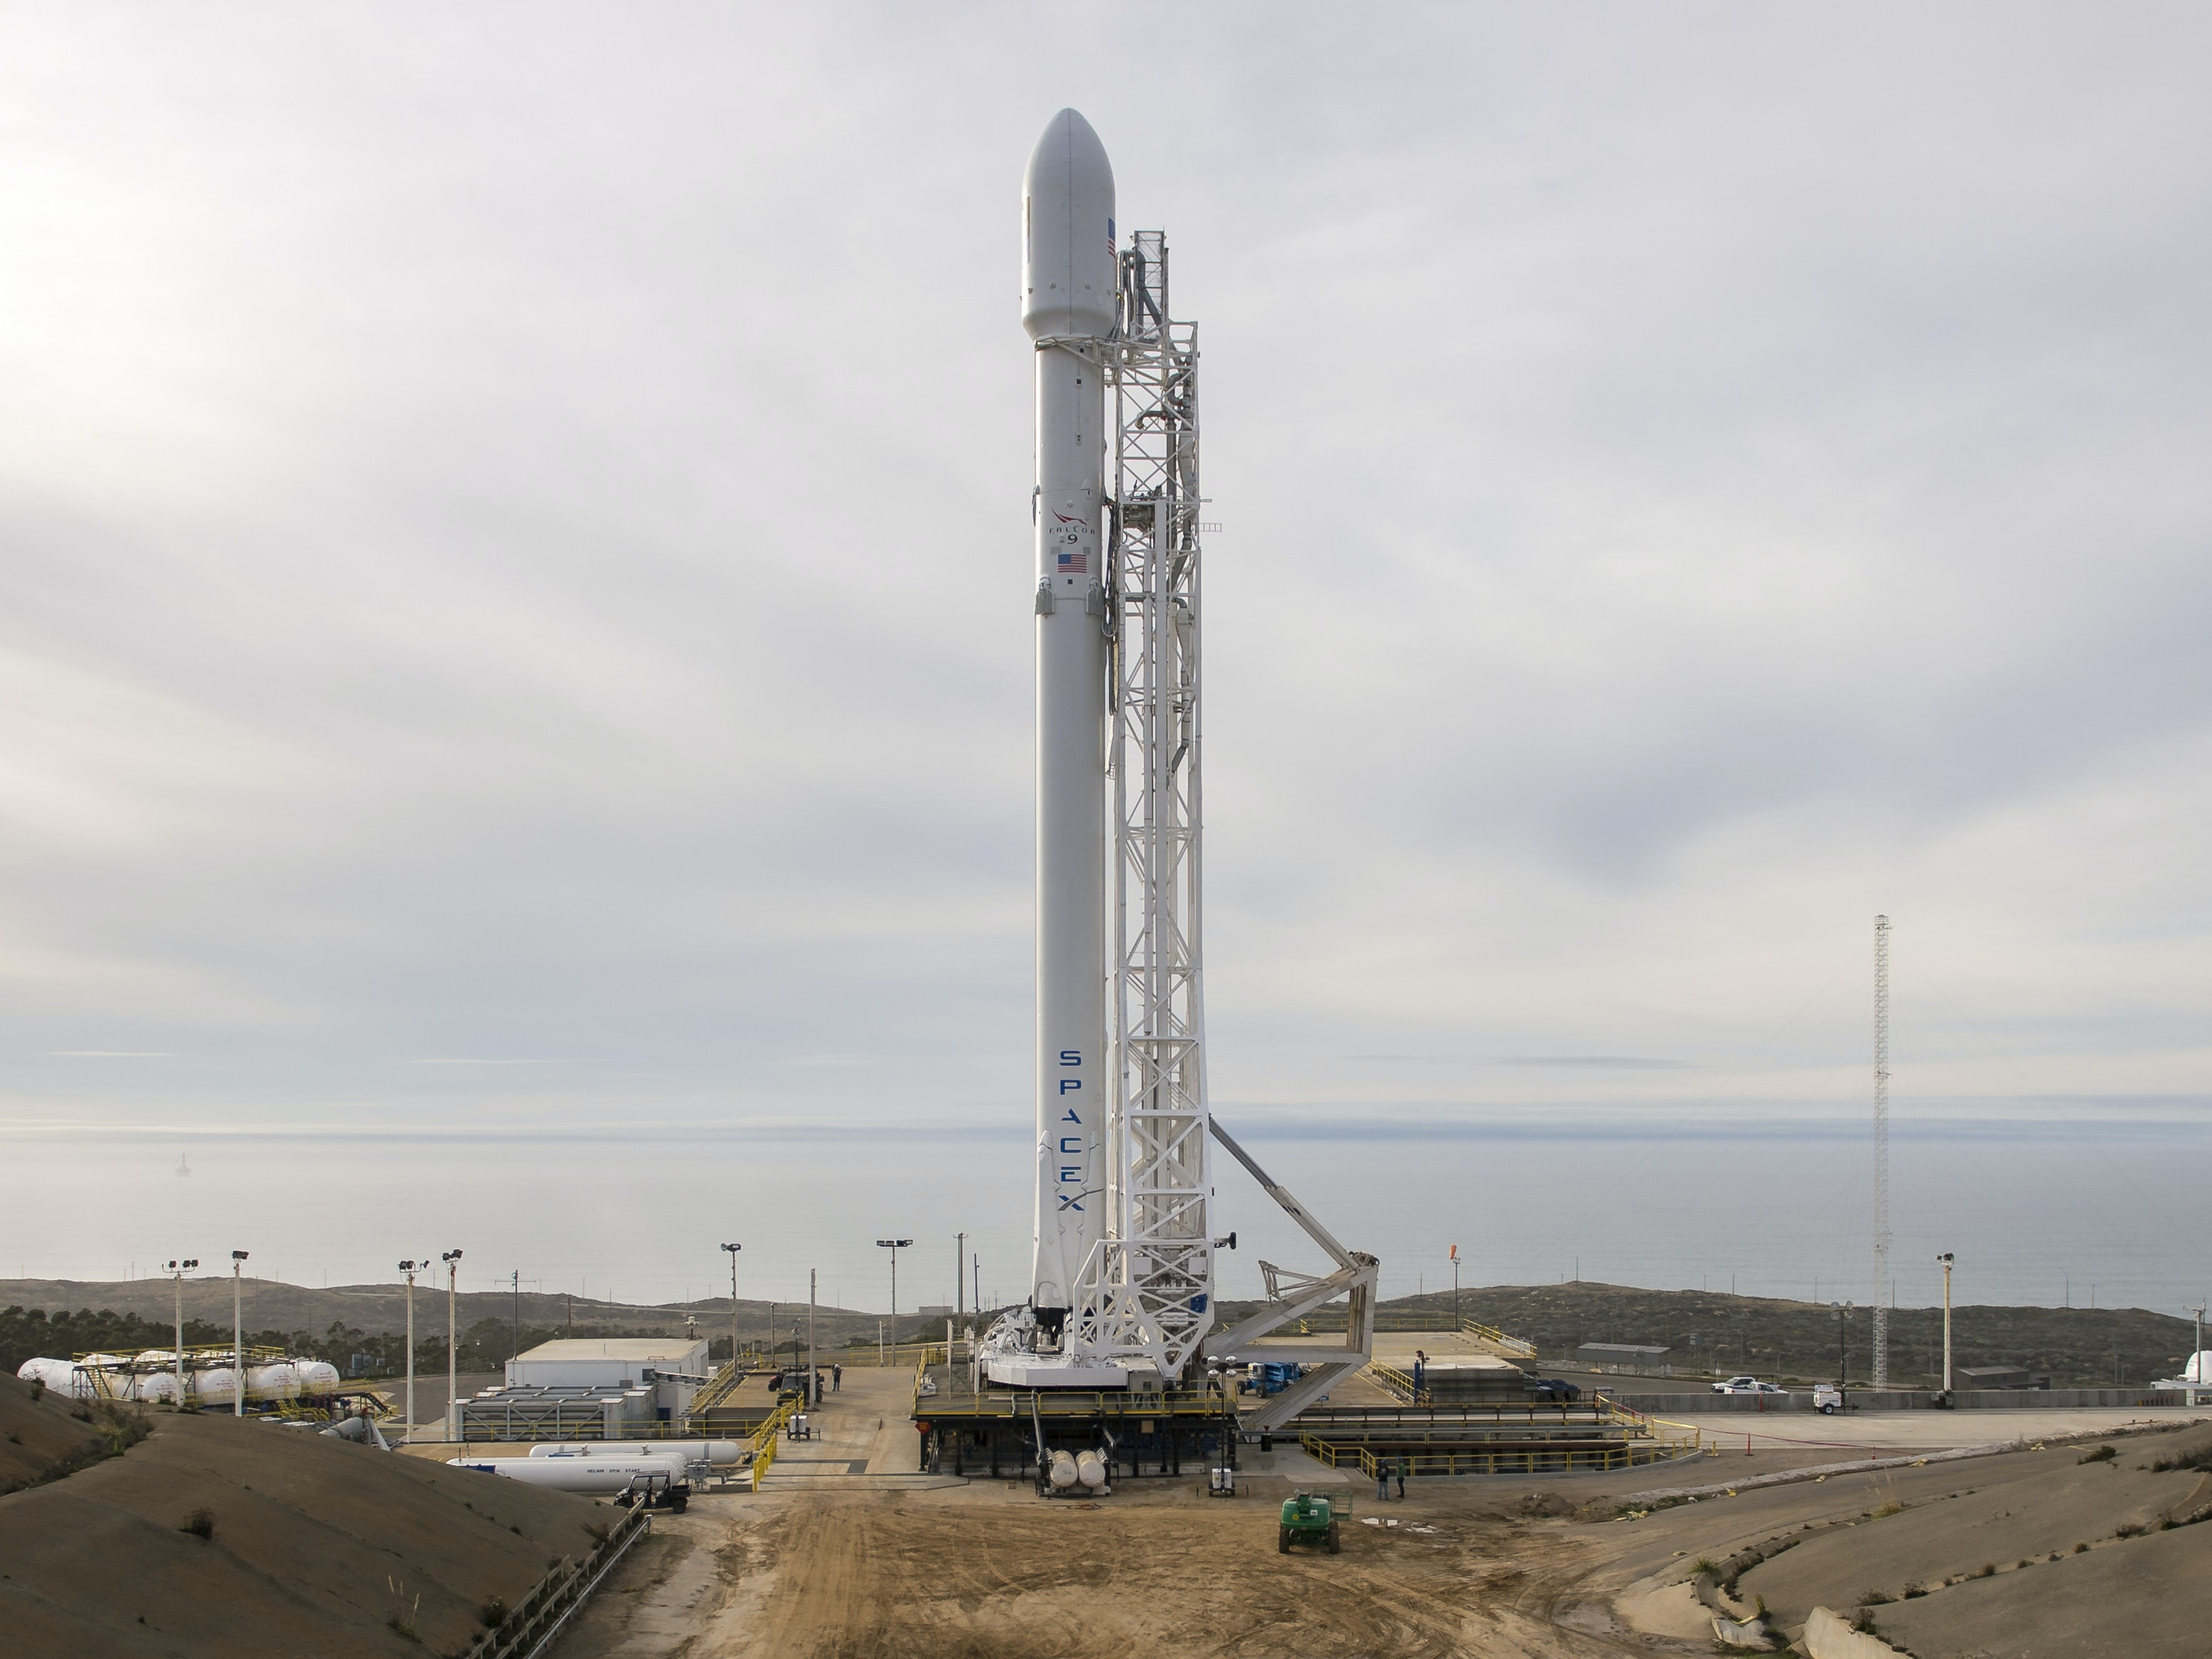 Department of Defense Awards Elon Musk's SpaceX a Military Satellite Contract